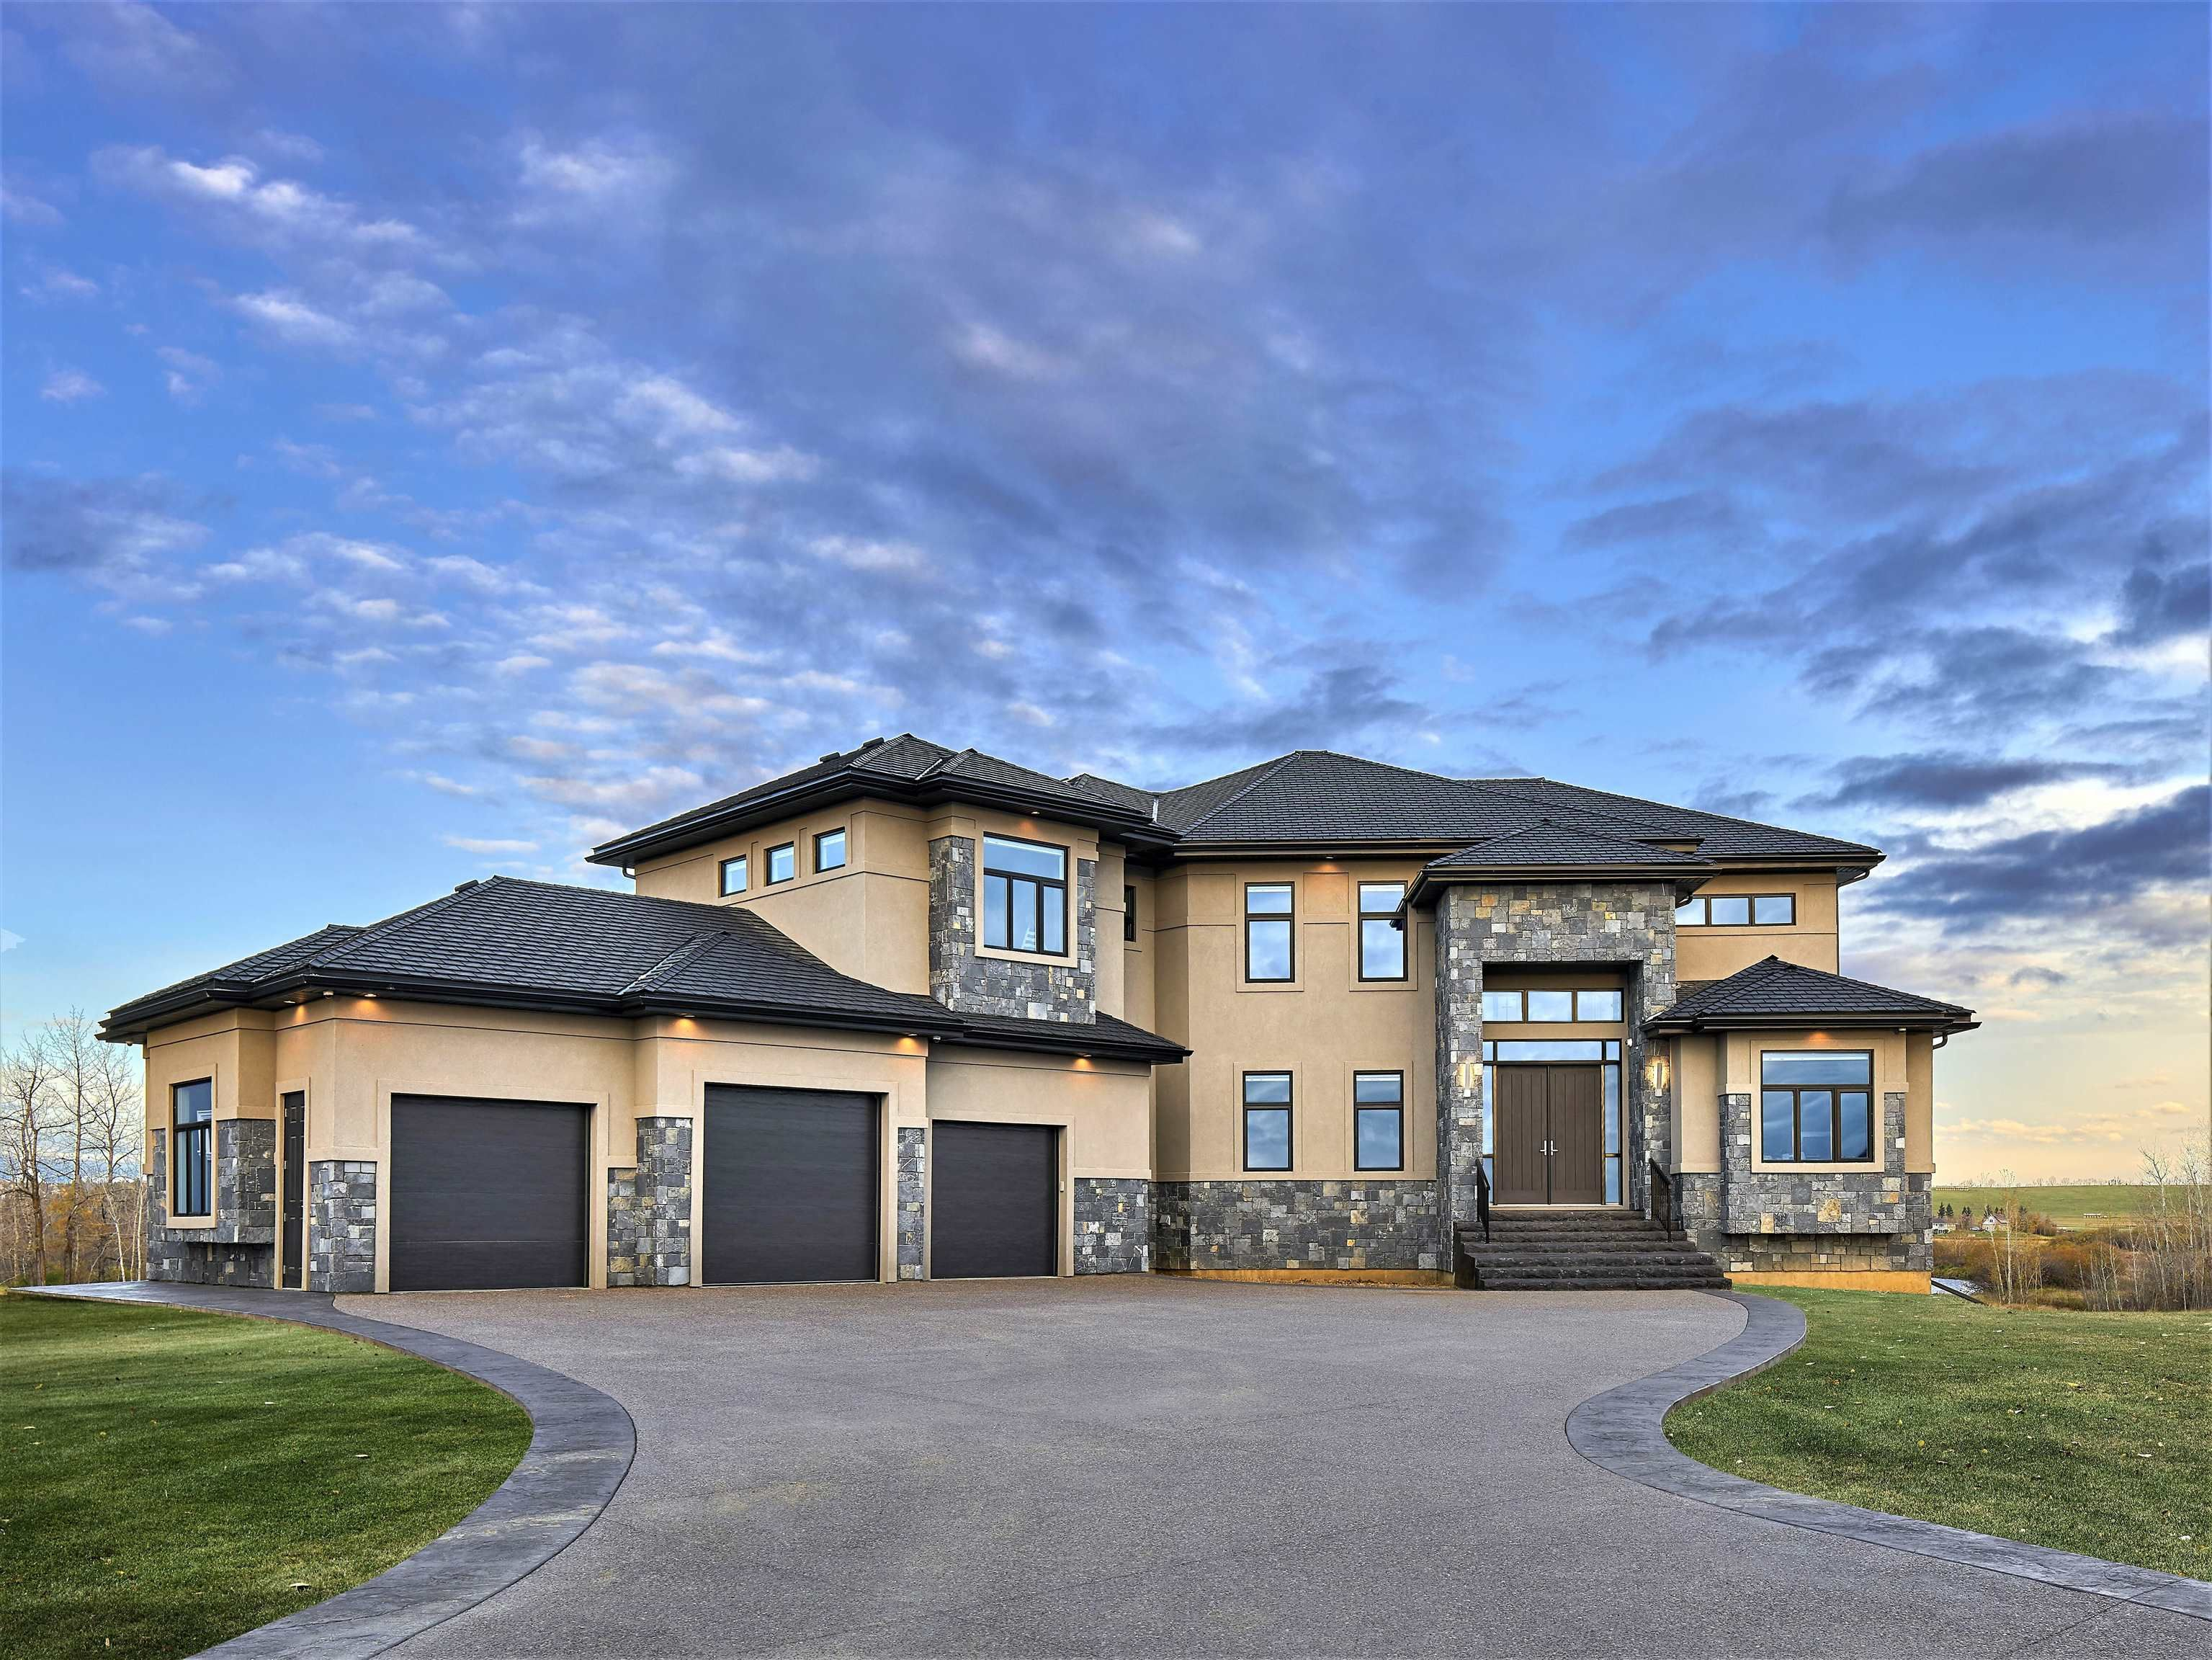 Main Photo: 207 RIVERVIEW Way: Rural Sturgeon County House for sale : MLS®# E4265677